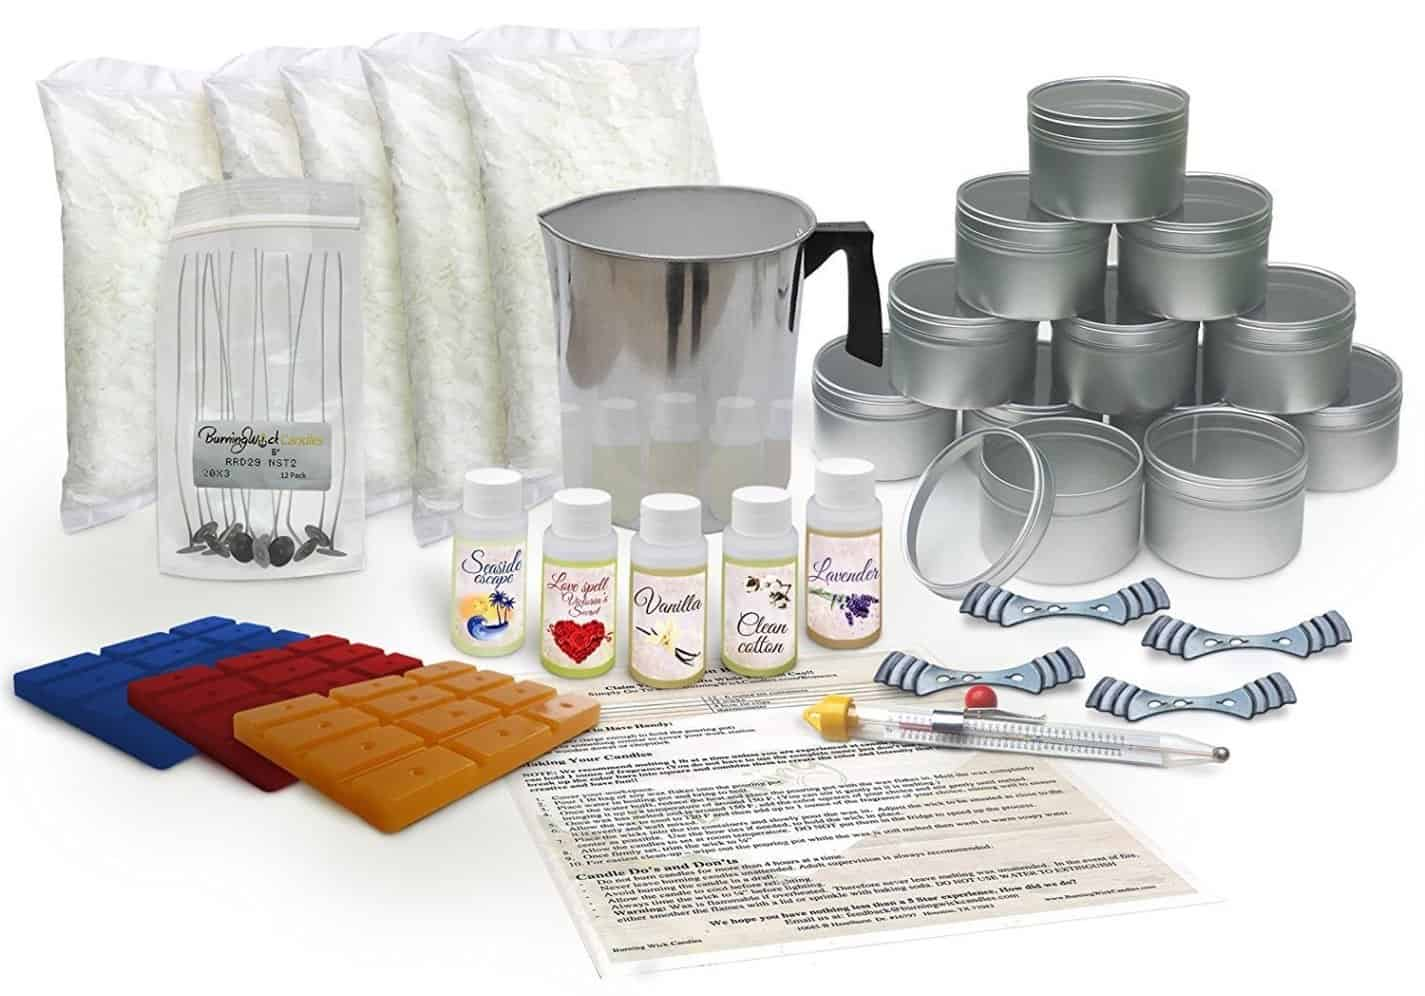 the best candle making kit for vegans